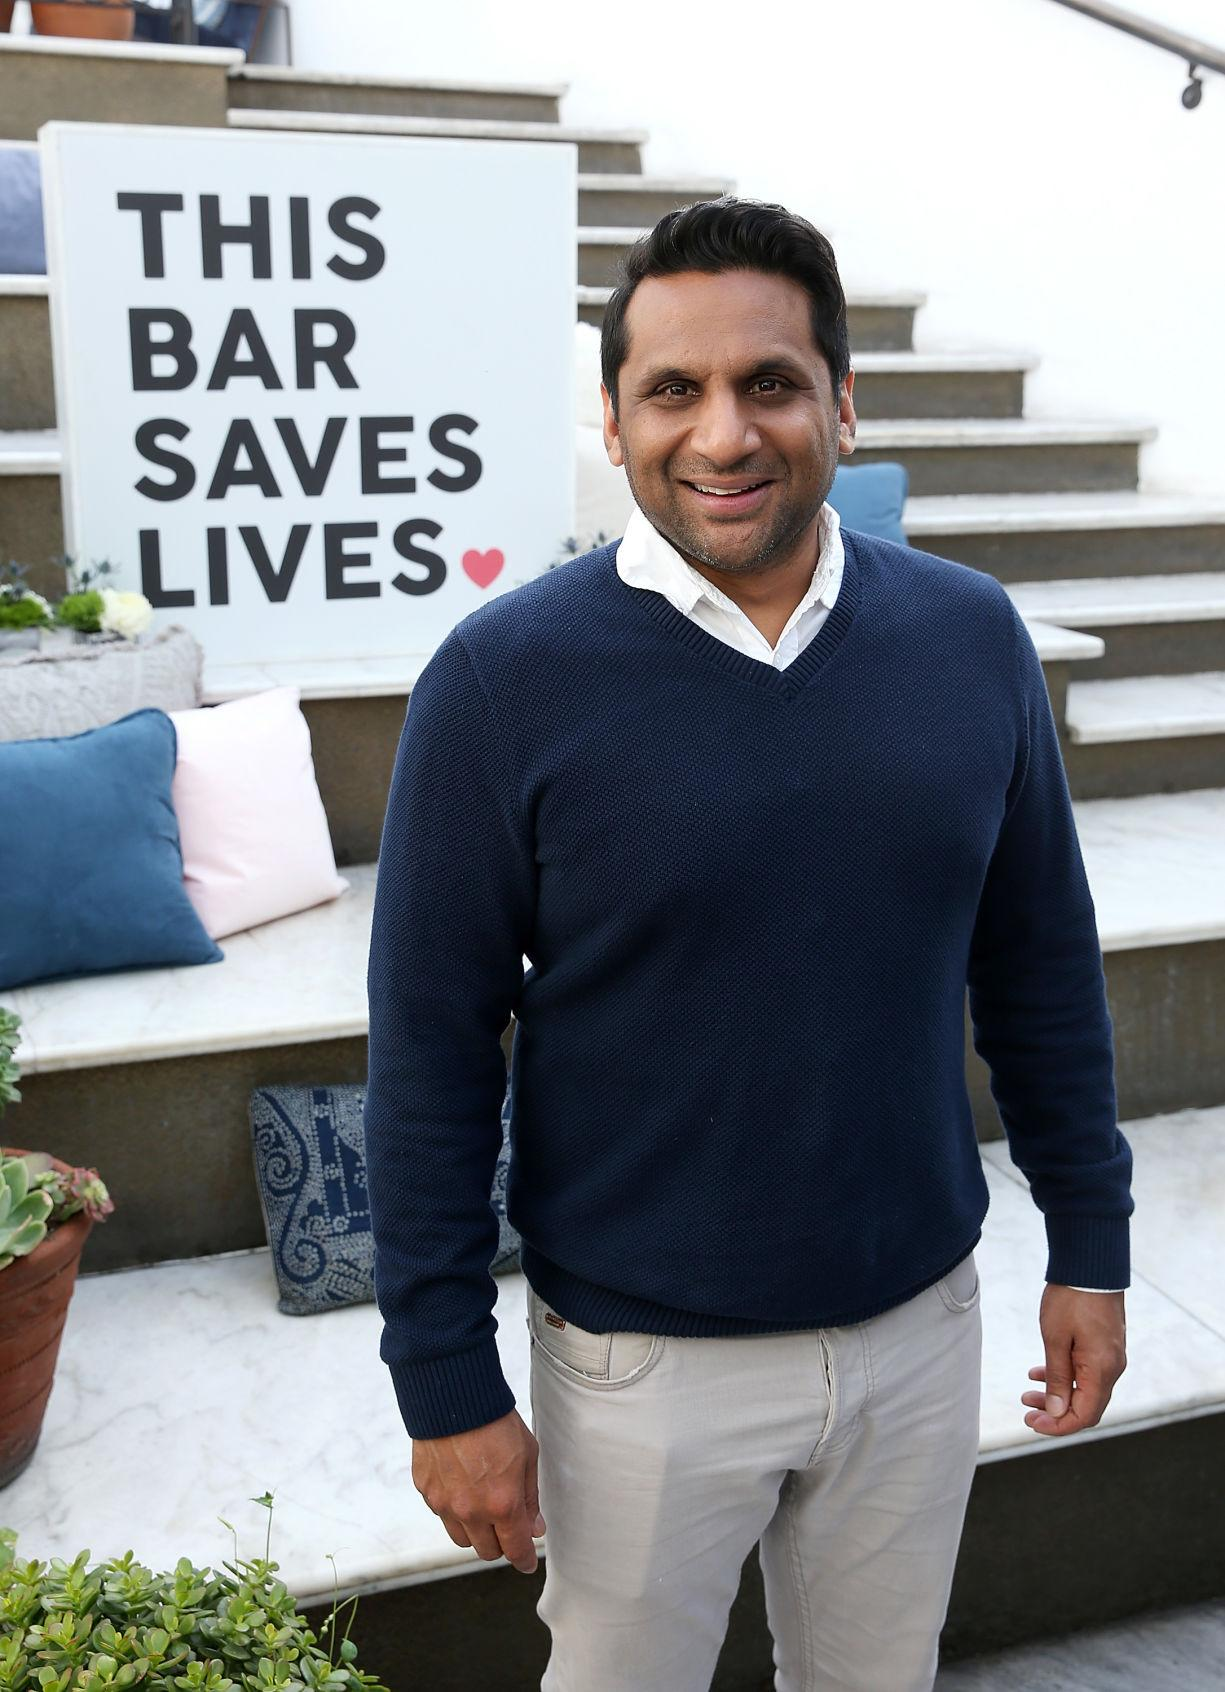 Ravi Patel's Snack Bar That 'Saves Lives' Introduces 'Clean, Allergy-free, School-safe' Bars for Kids